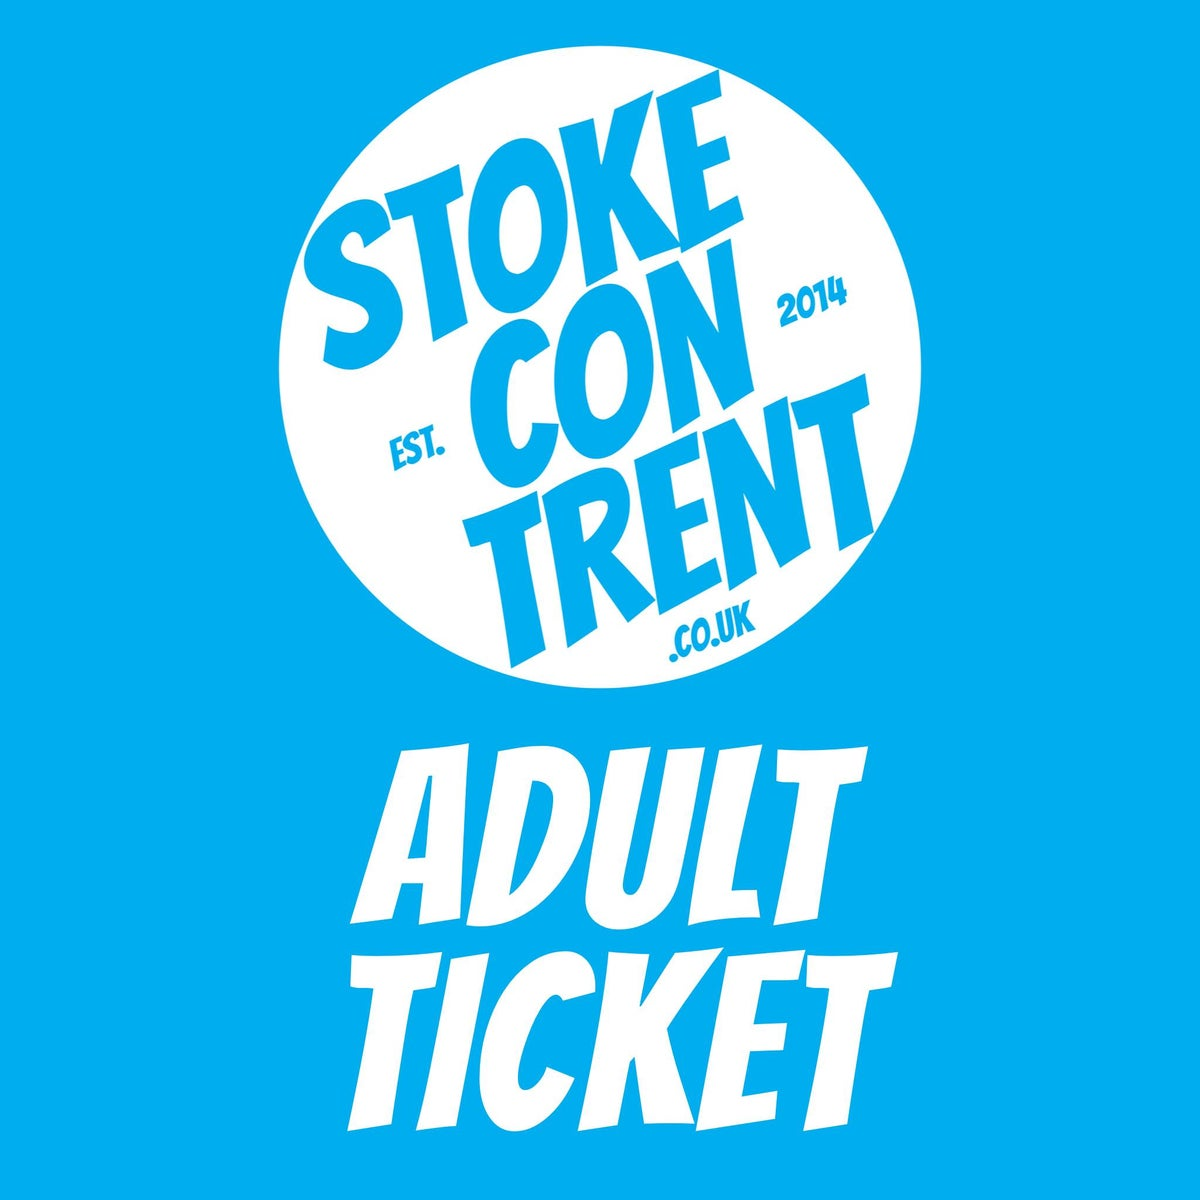 Image of Adult Ticket for Stoke CON Trent 11